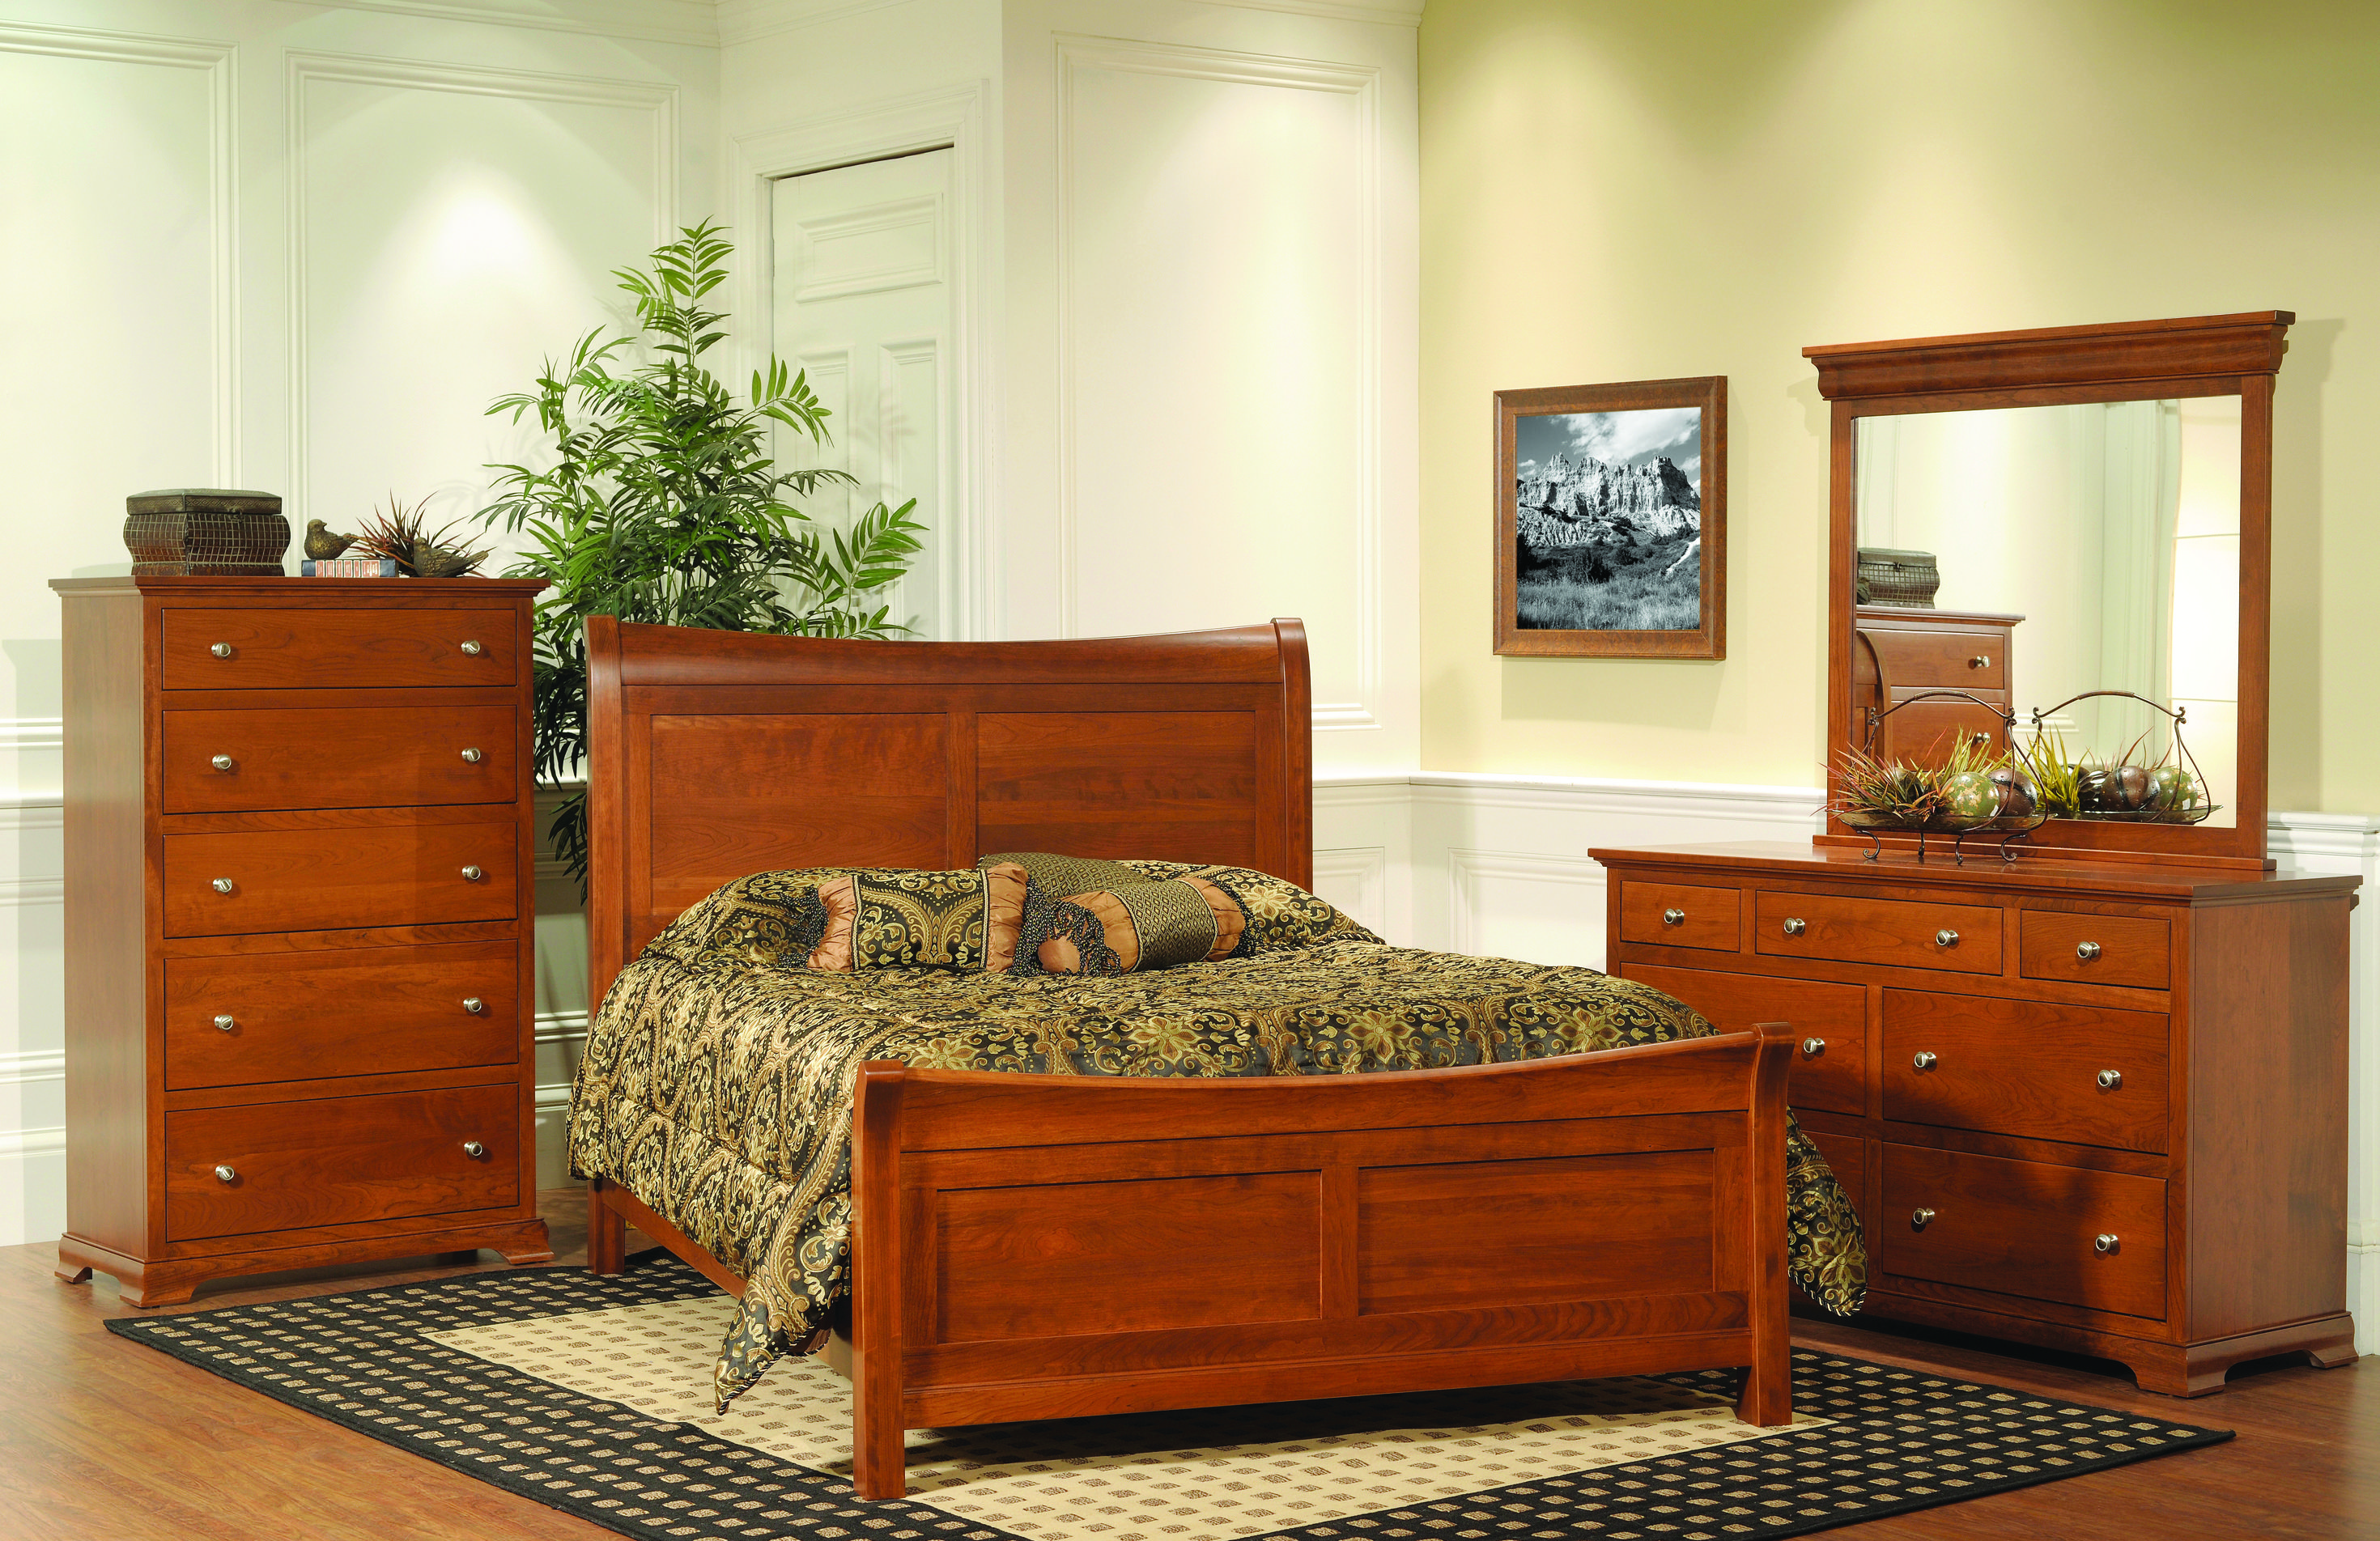 New arrival to the Derby showroom! Elegant American made